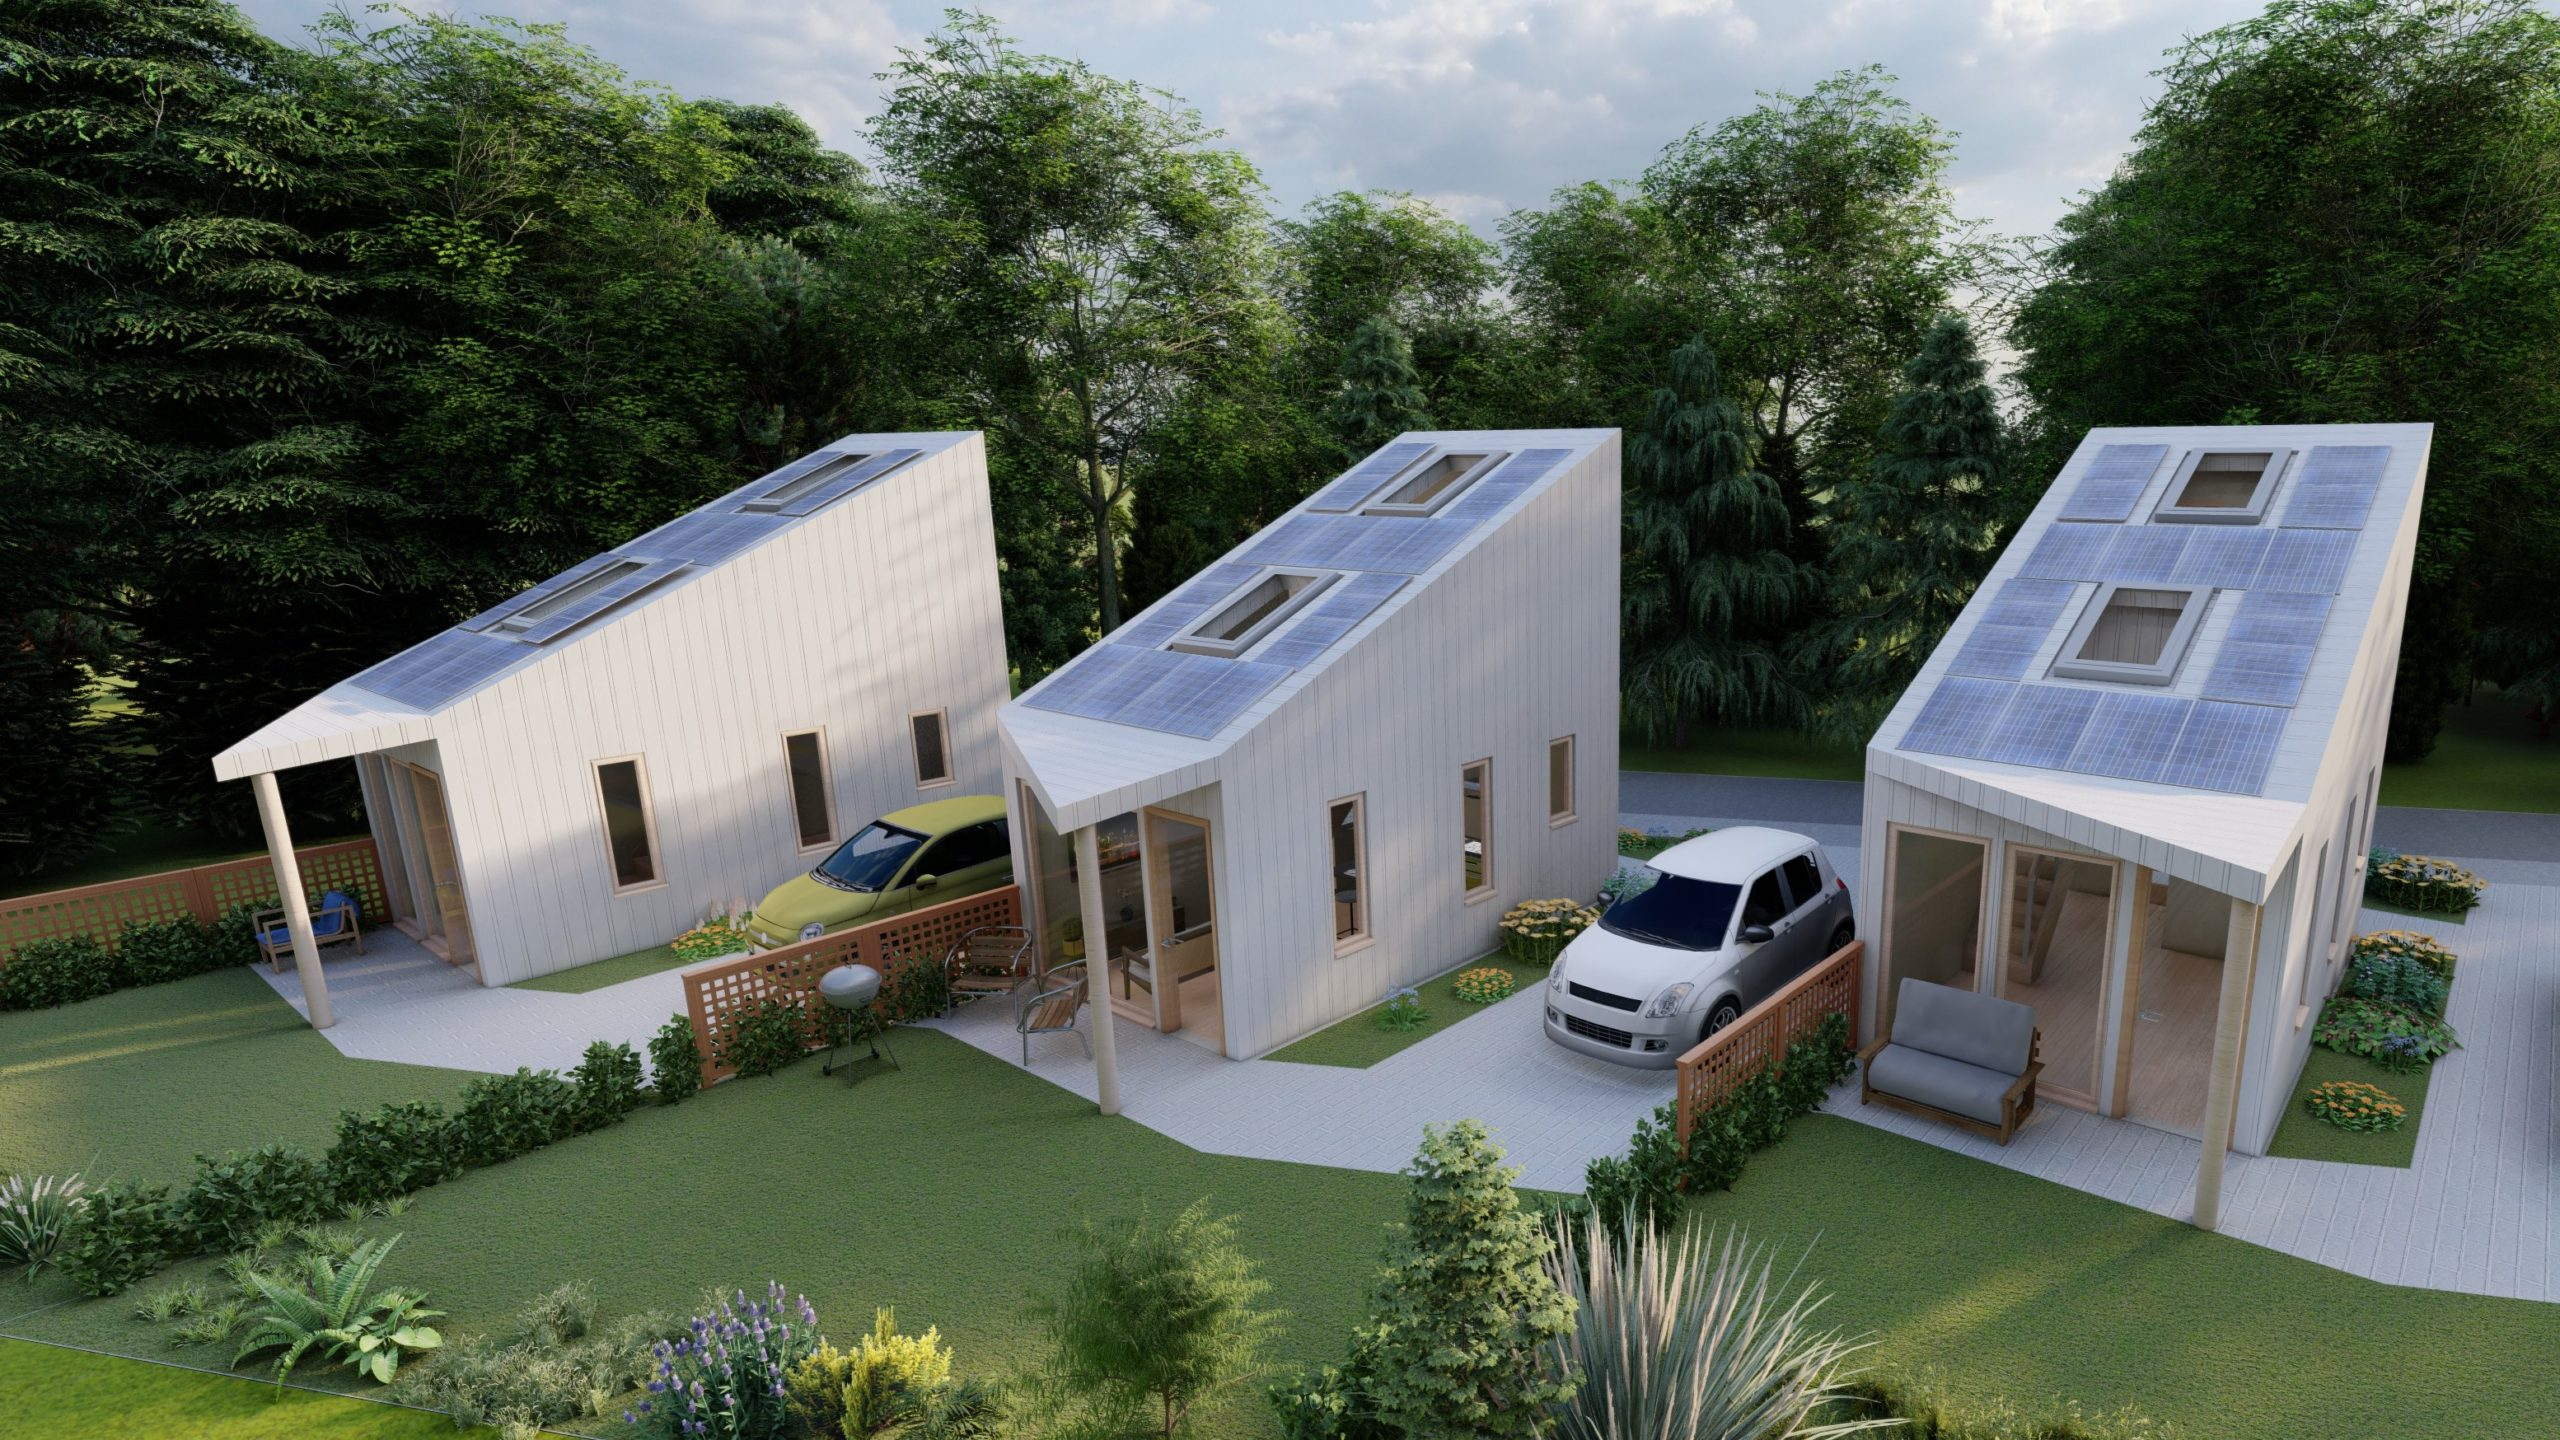 An artist's impression of the so-called 'Tiny Houses' designed by north-east architecture students, which can be self-assembled.